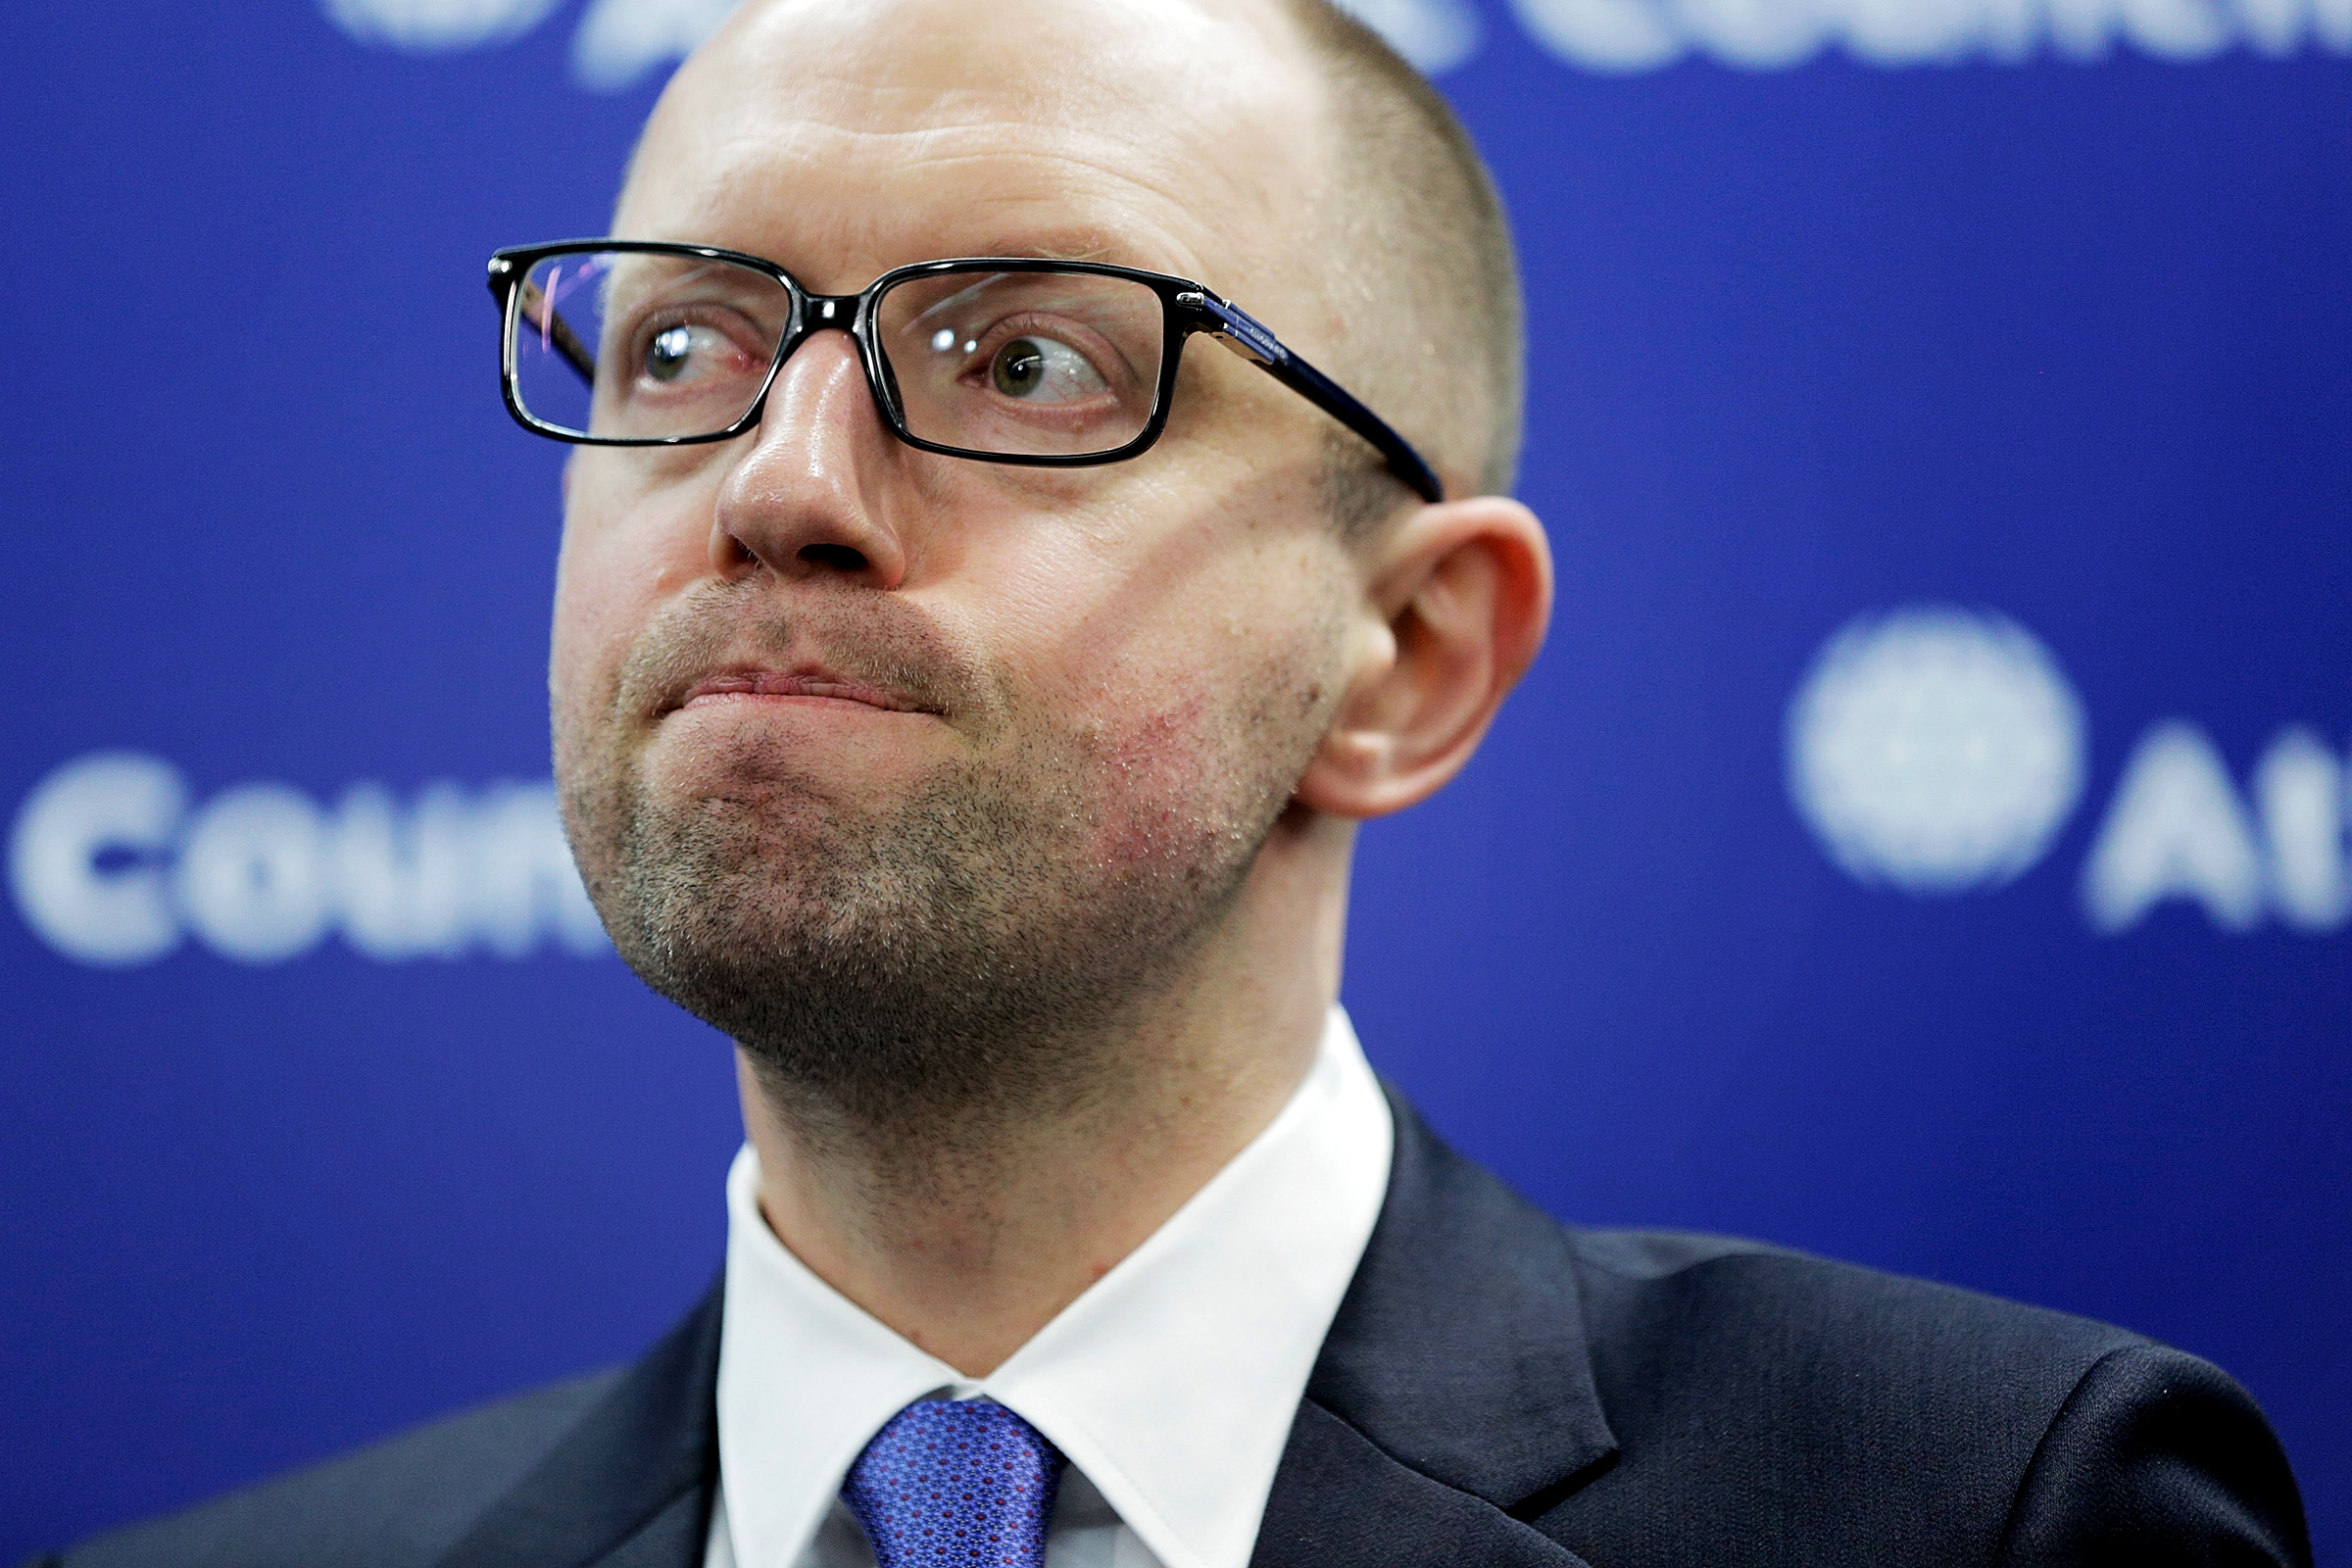 Ukrainian PM Yatsenyuk Steps Down